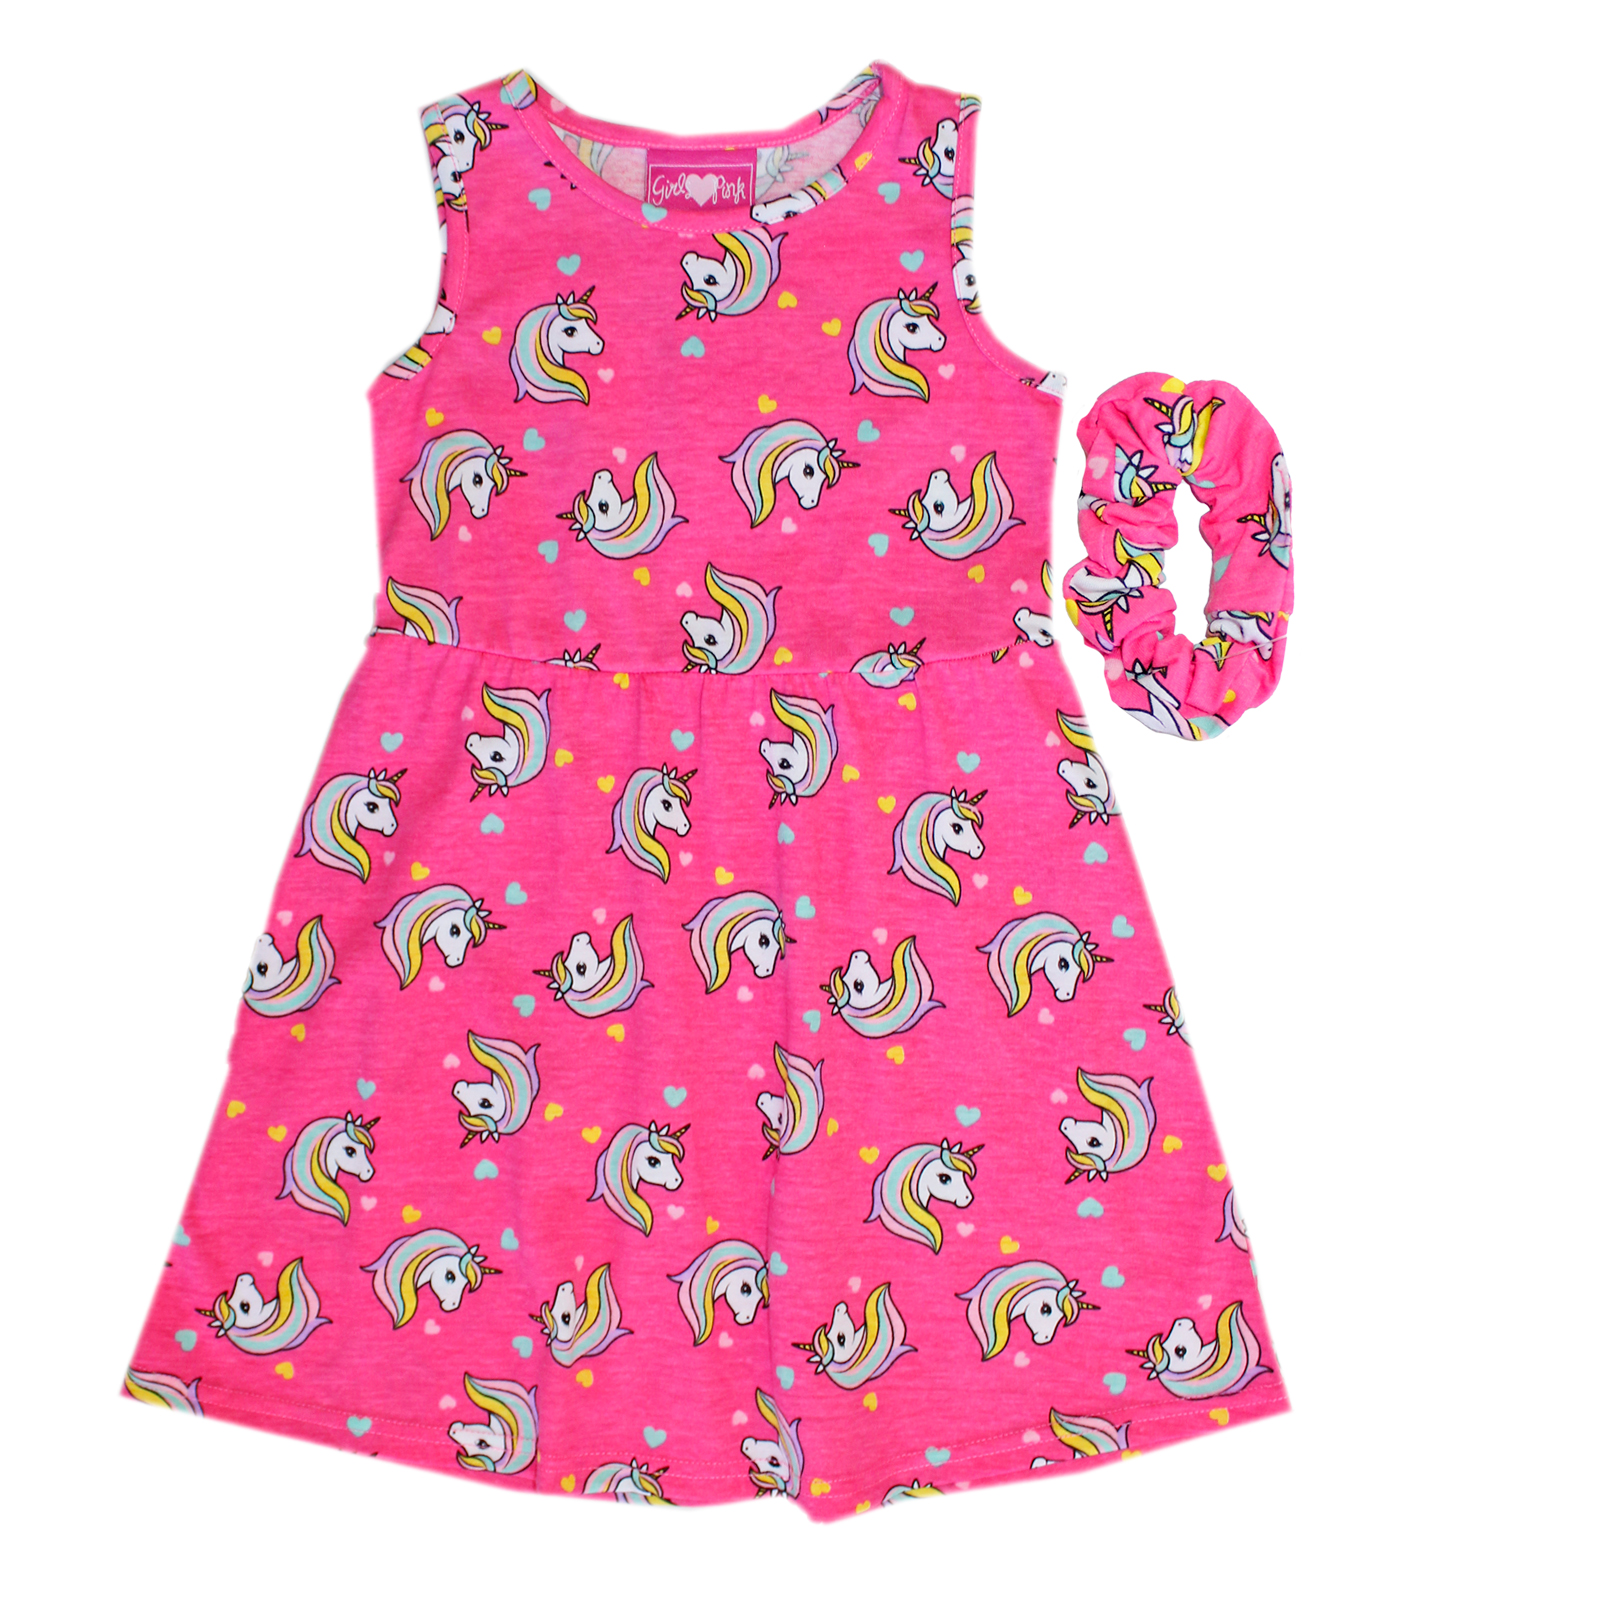 GIRLS PINK Toddler Sleeveless Dress W Scrunchie